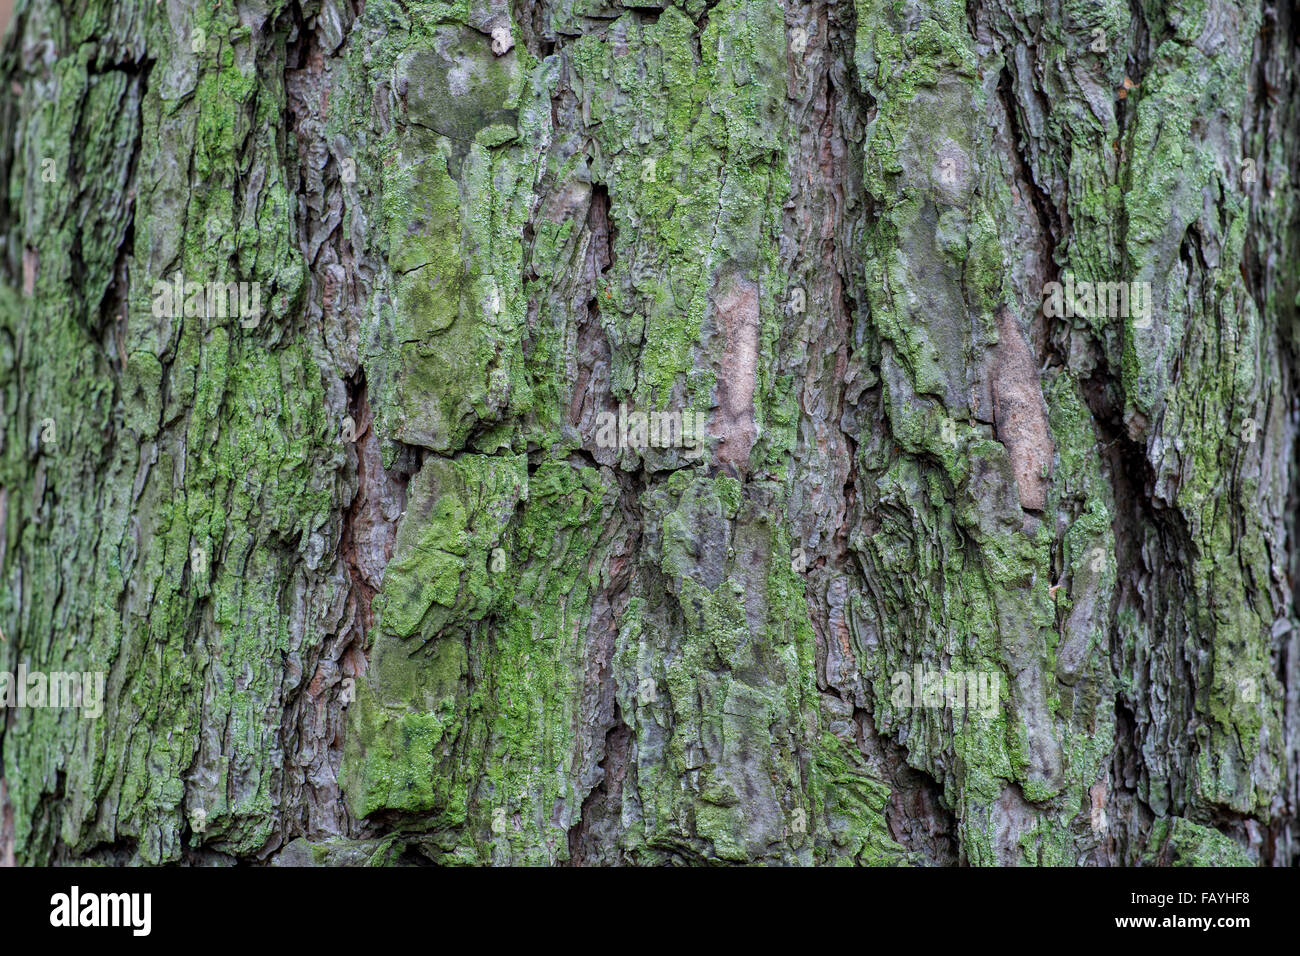 Old pine tree bark covered with green algae - Stock Image